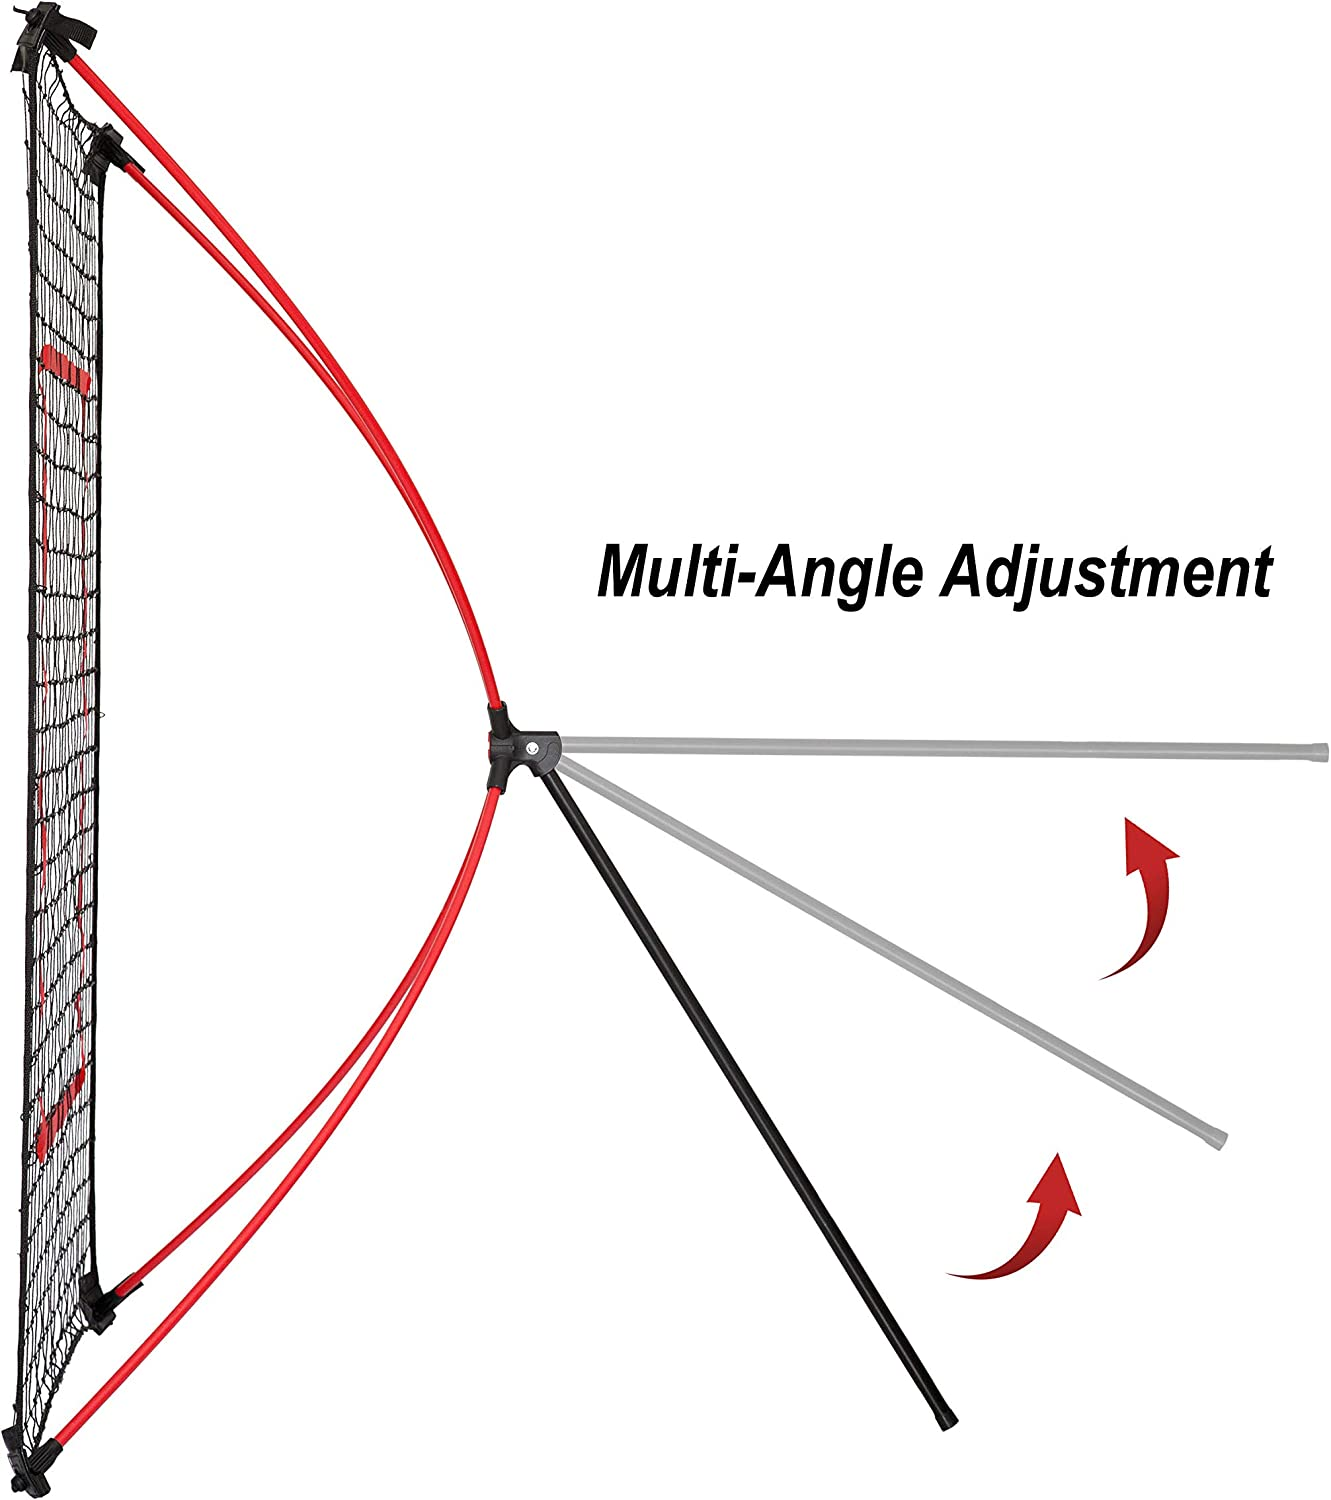 Quick Set Up Lightweight and Fielding Multi Angle Adjustment 5FT x 3FT Baseball Training Net Baseball Trainer Suitable for Throwing Pitching NET PLAYZ PitchBack Portable Baseball Rebound Net